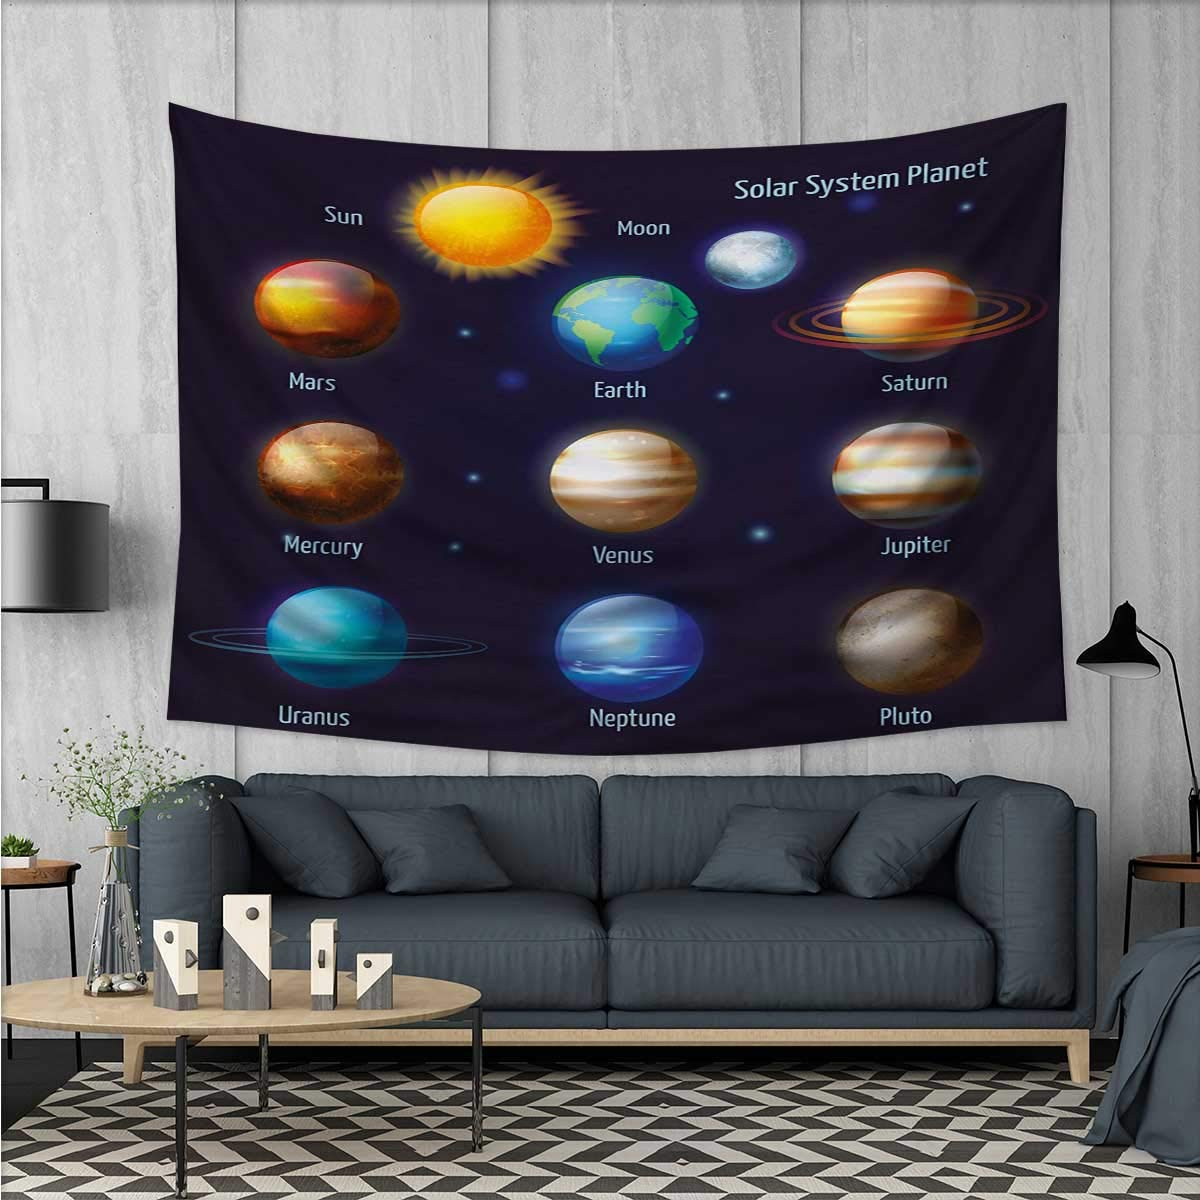 Anhuthree Educational Customed Widened Tapestry Solar System Planets and The Sun Pictograms Set Astronomical Colorful Design Wall Hanging Tapestry 90''x60'' Multicolor